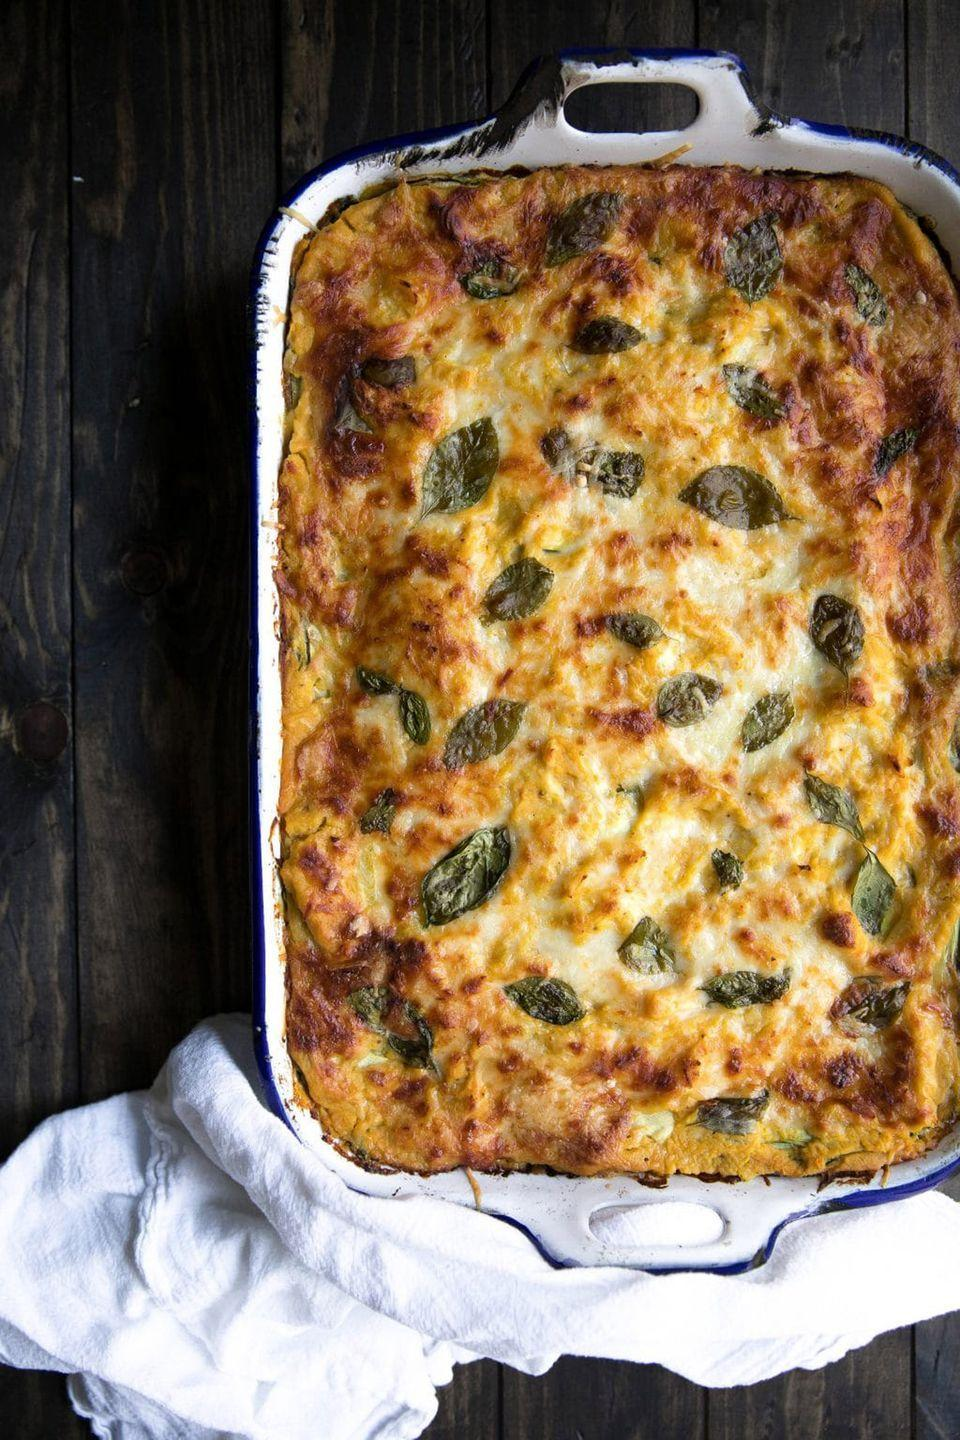 """<p>Filled with ricotta, mozzarella, <em>and </em>Parmesan cheese, your guests will be begging for seconds of this vegetarian dish.</p><p><strong>Get the recipe at <a href=""""https://theforkedspoon.com/butternut-squash-zucchini-spinach-lasagna/"""" rel=""""nofollow noopener"""" target=""""_blank"""" data-ylk=""""slk:The Forked Spoon"""" class=""""link rapid-noclick-resp"""">The Forked Spoon</a>.</strong></p>"""